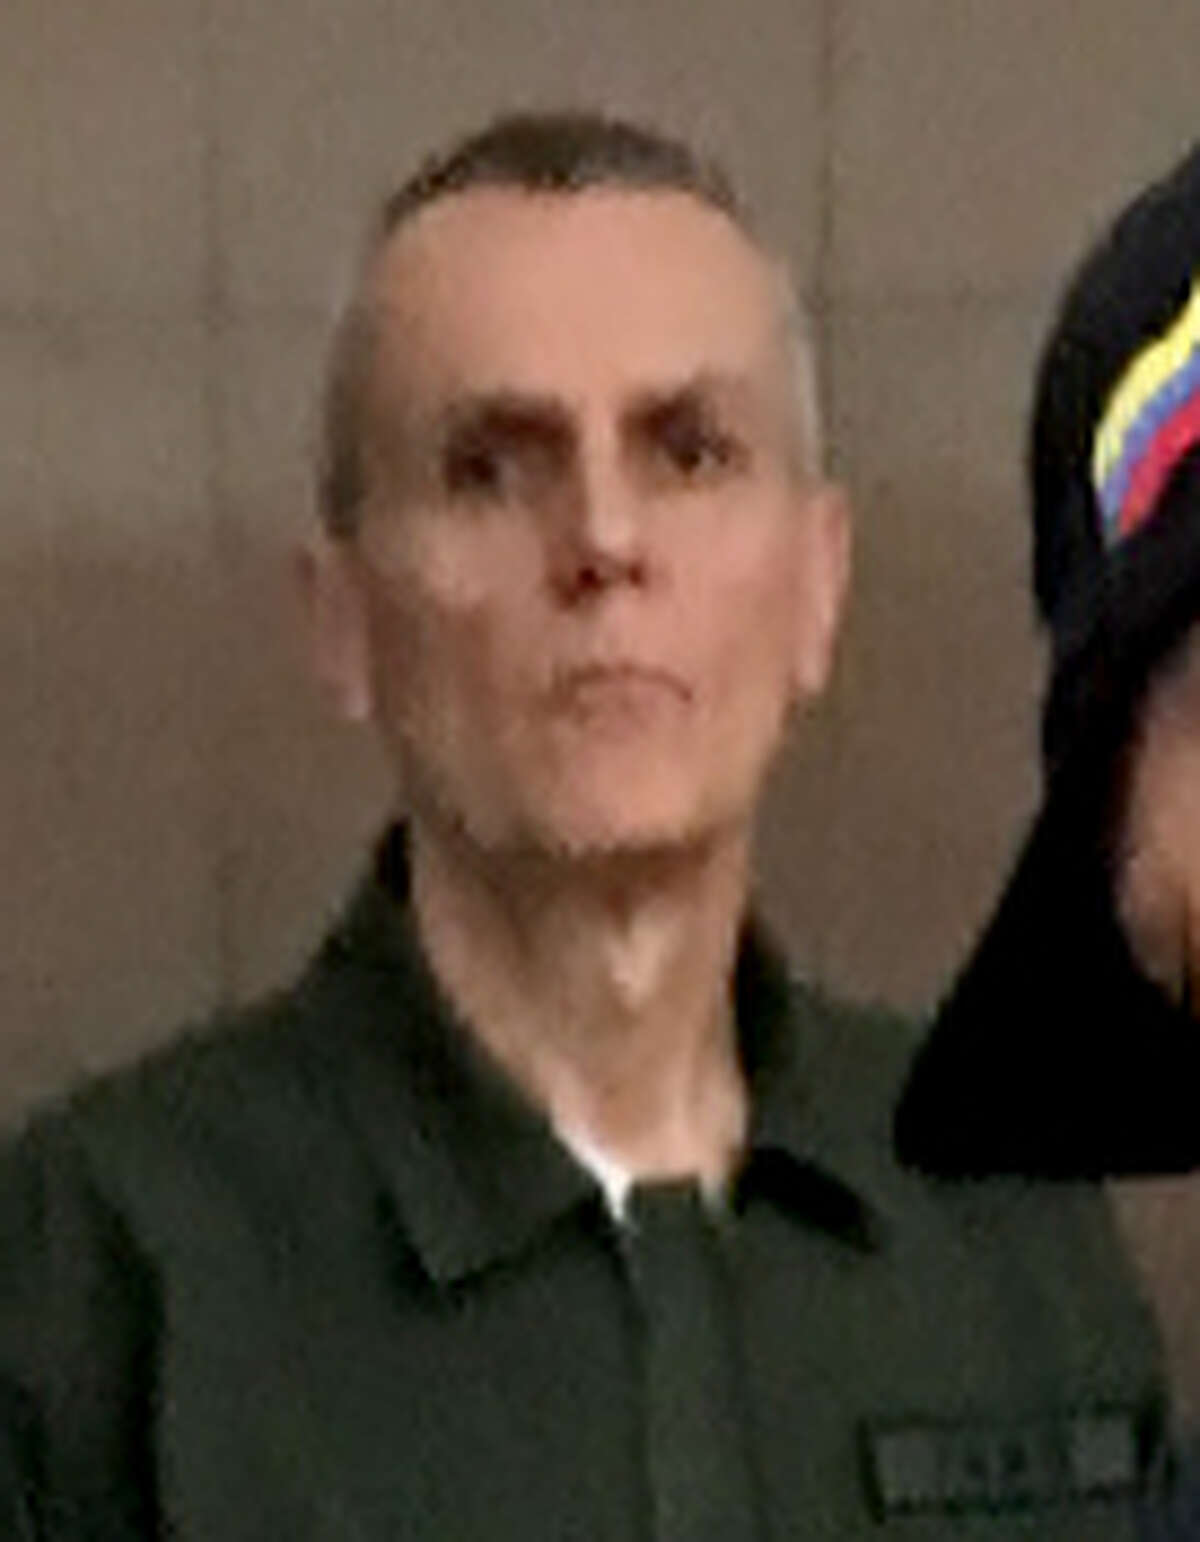 In this January 2019 photo, Tomeu Vadell, 59, of Lake Charles, a former Citgo employee, has shed more than 60 pounds since he was first detained. He has a history of hypertension and cardiovascular problems and his family worries about his health in detention in Venezuela.